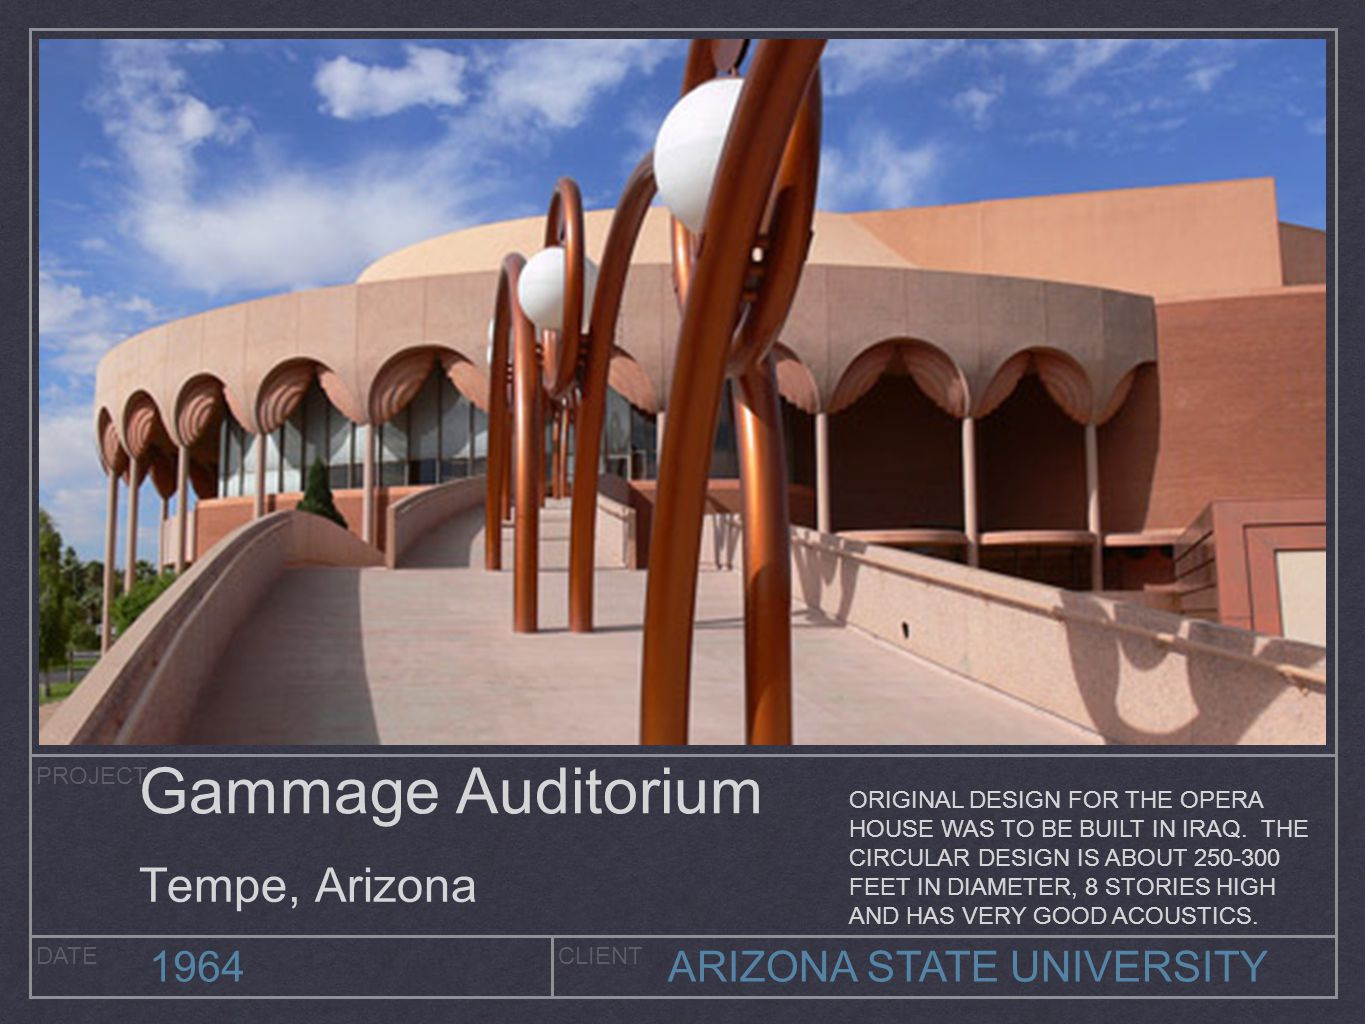 PROJECT DATECLIENT 1964ARIZONA STATE UNIVERSITY Gammage Auditorium Tempe, Arizona ORIGINAL DESIGN FOR THE OPERA HOUSE WAS TO BE BUILT IN IRAQ.